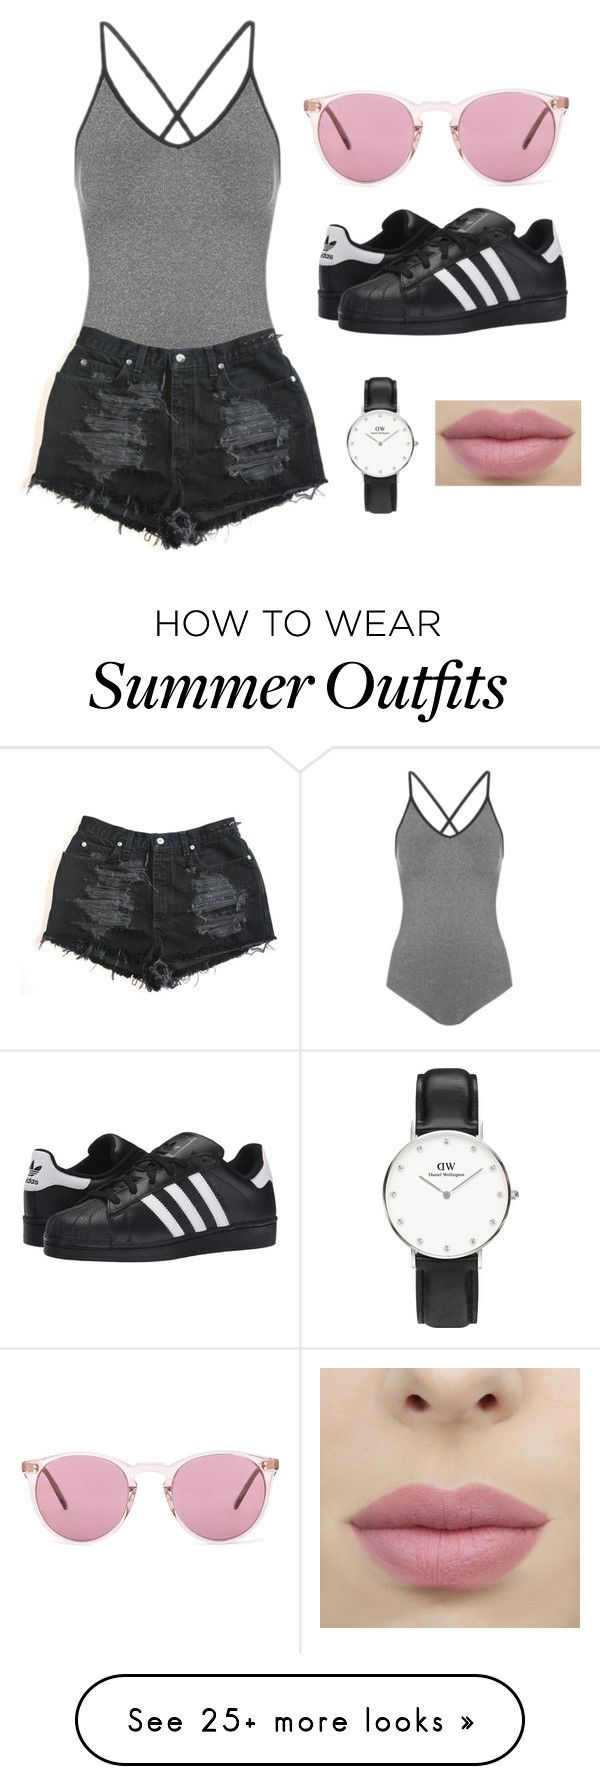 25+ Best Ideas about Summer Sweaters on Pinterest | Bright ...